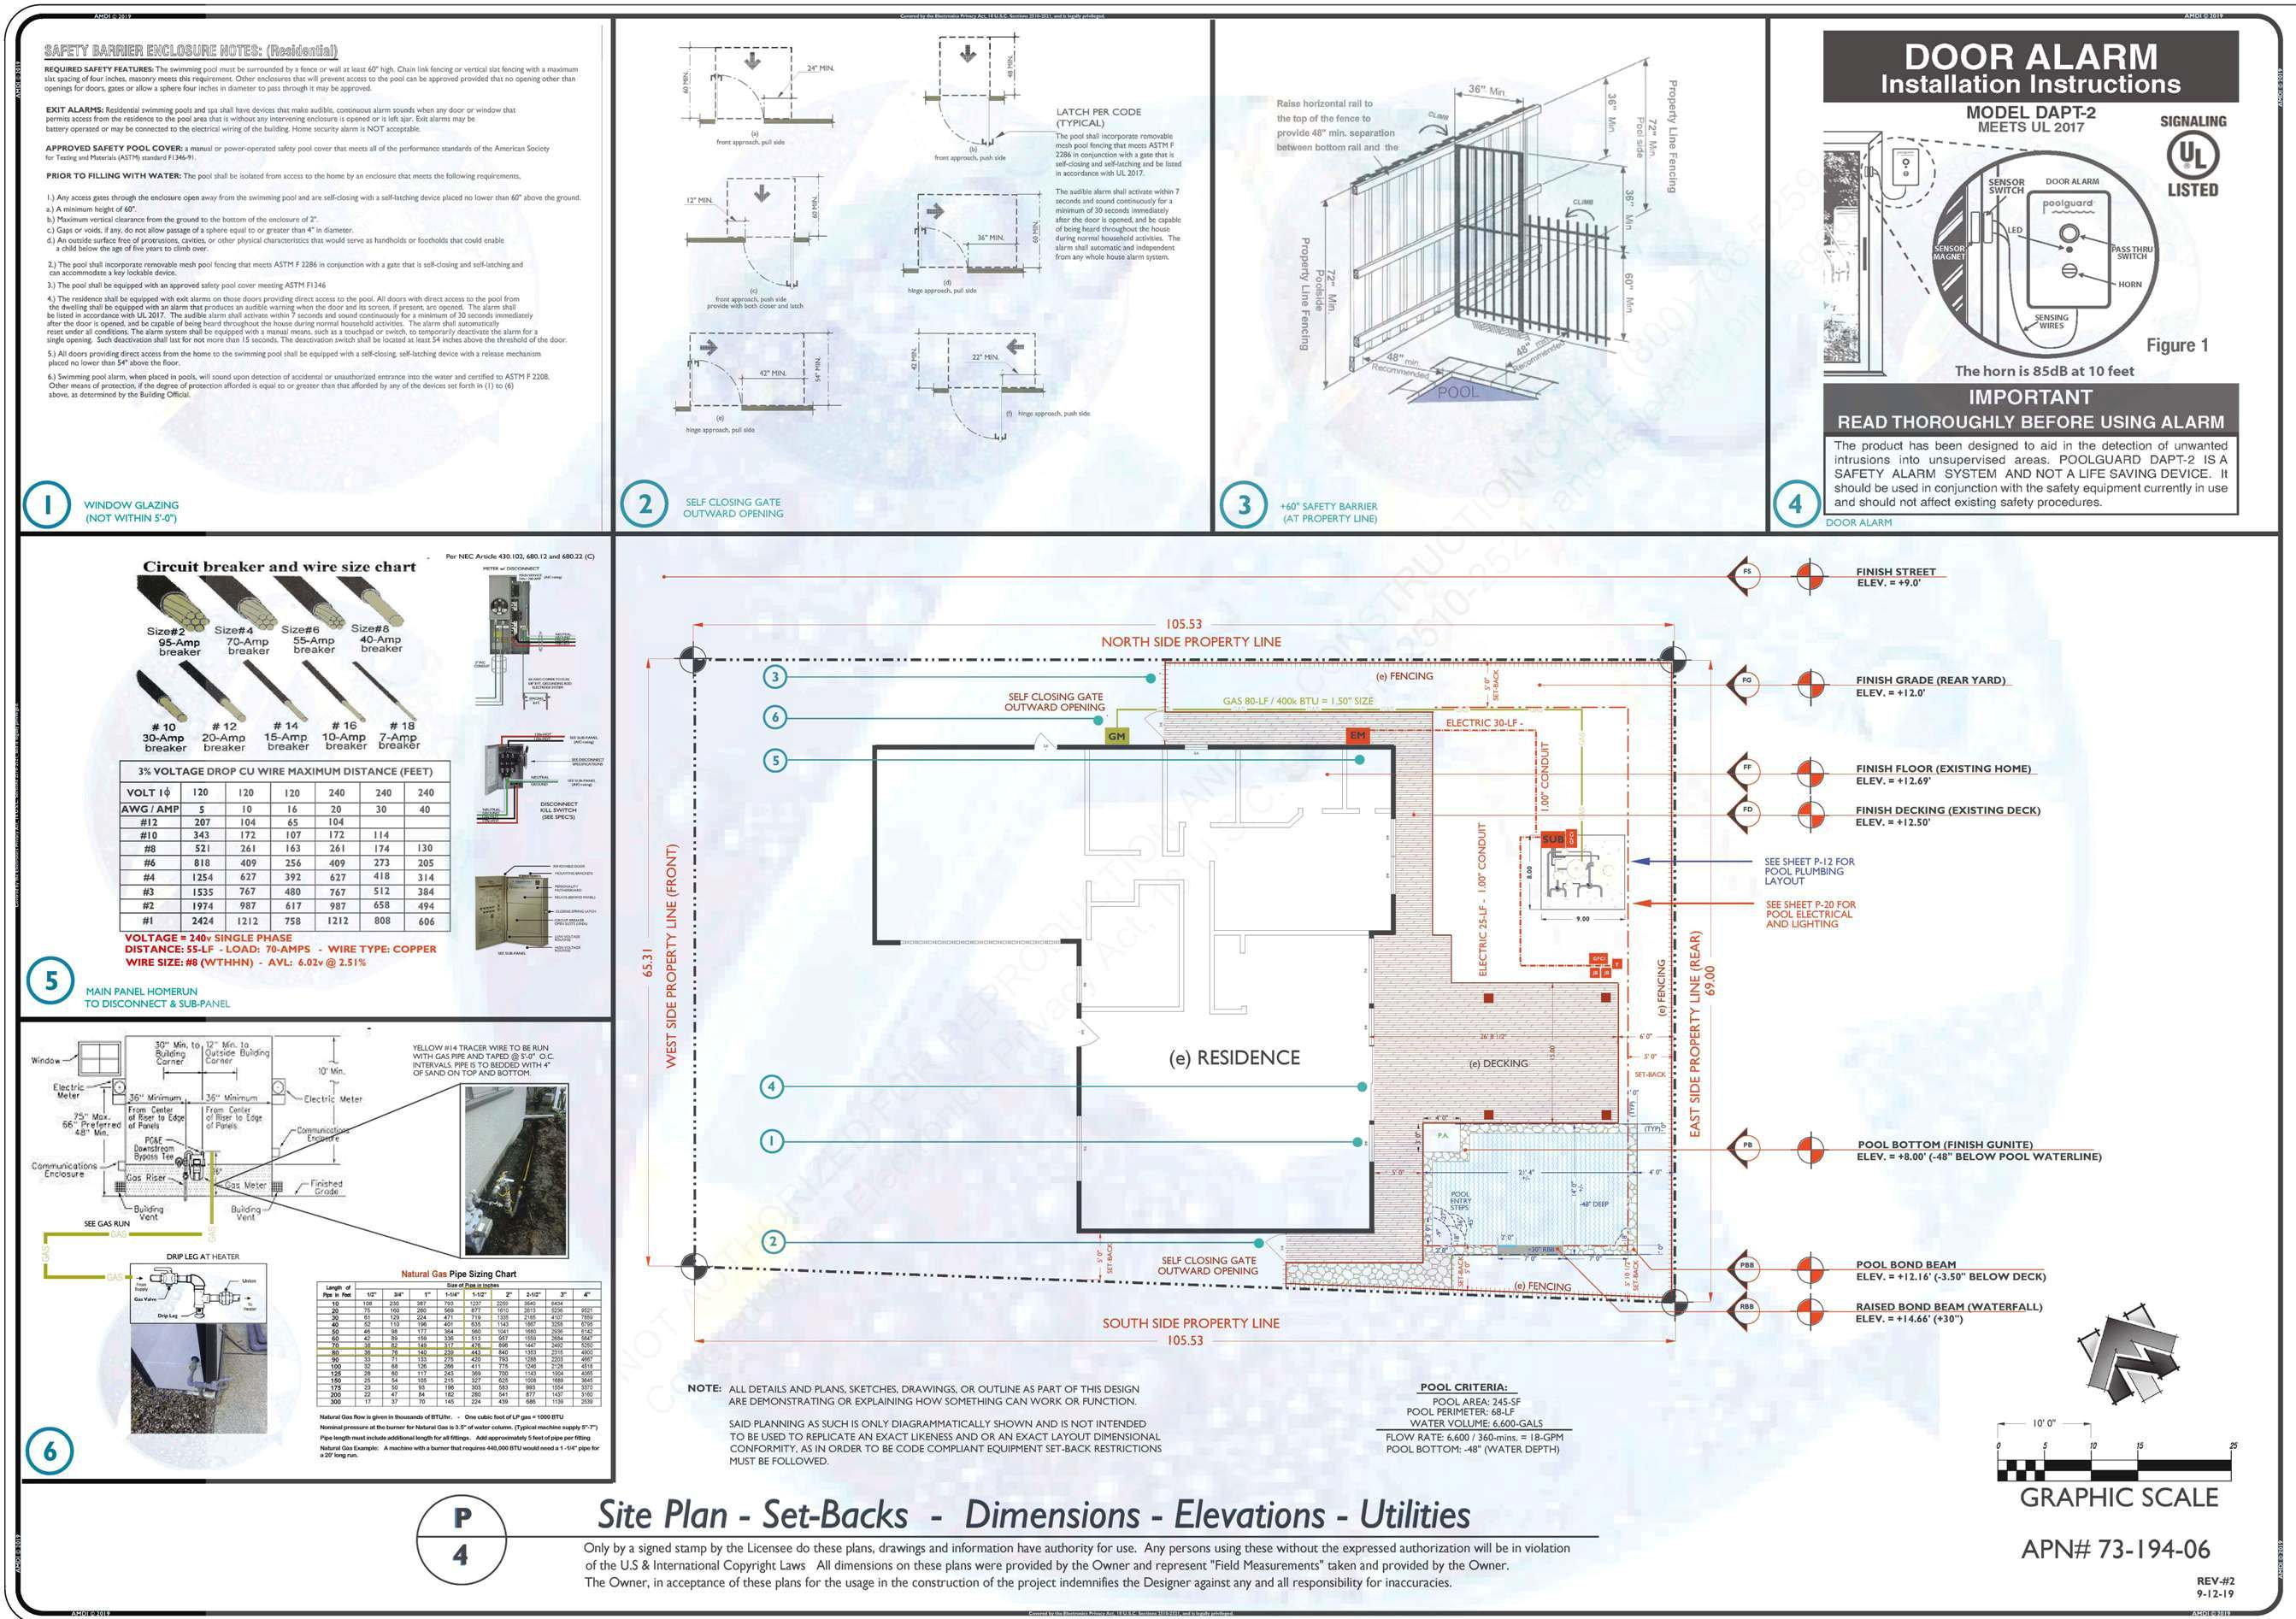 P-4-SITE-PLAN-LAYOUT REV-2